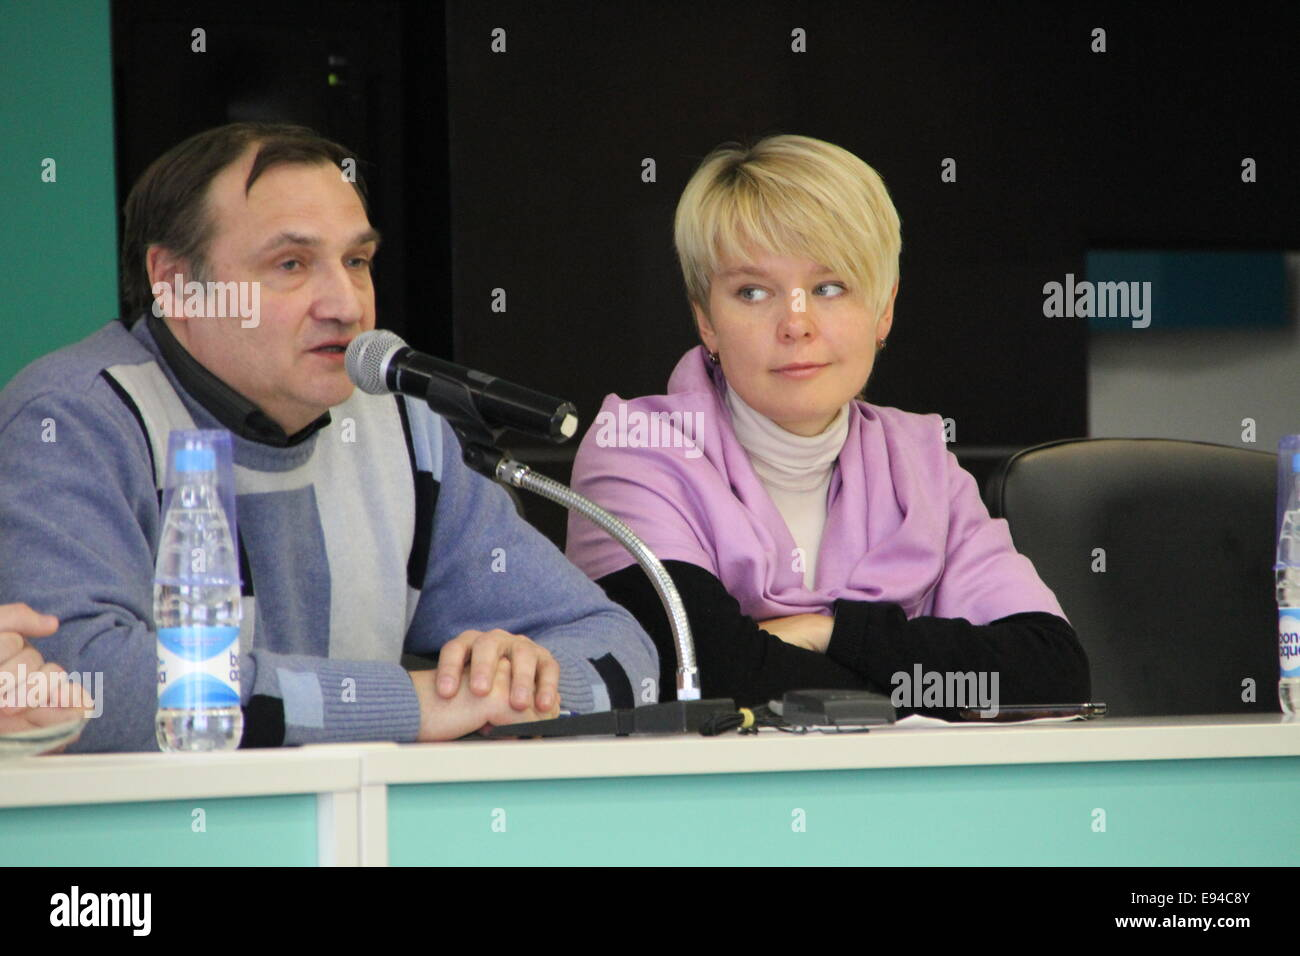 Moscow, Russia - February 11, 2012. Expert Andrei Buzin and policies Evgeniya Chirikova. Conference on the set of - Stock Image